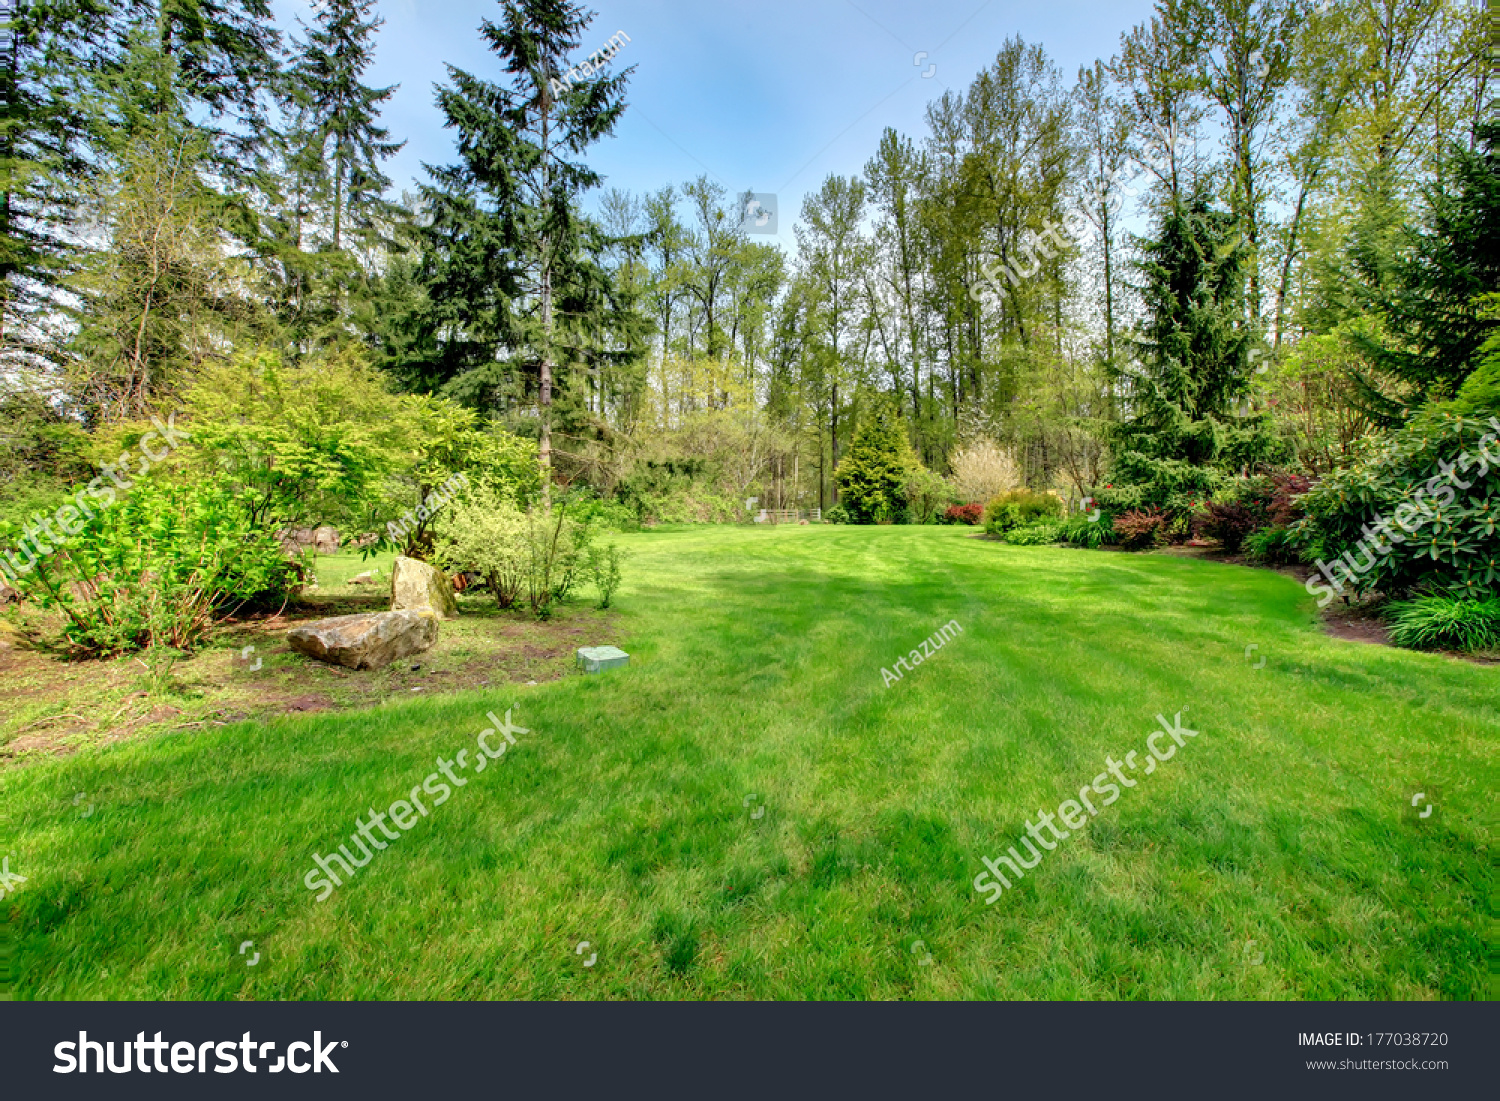 royalty free spring countryside backyard with green u2026 177038720